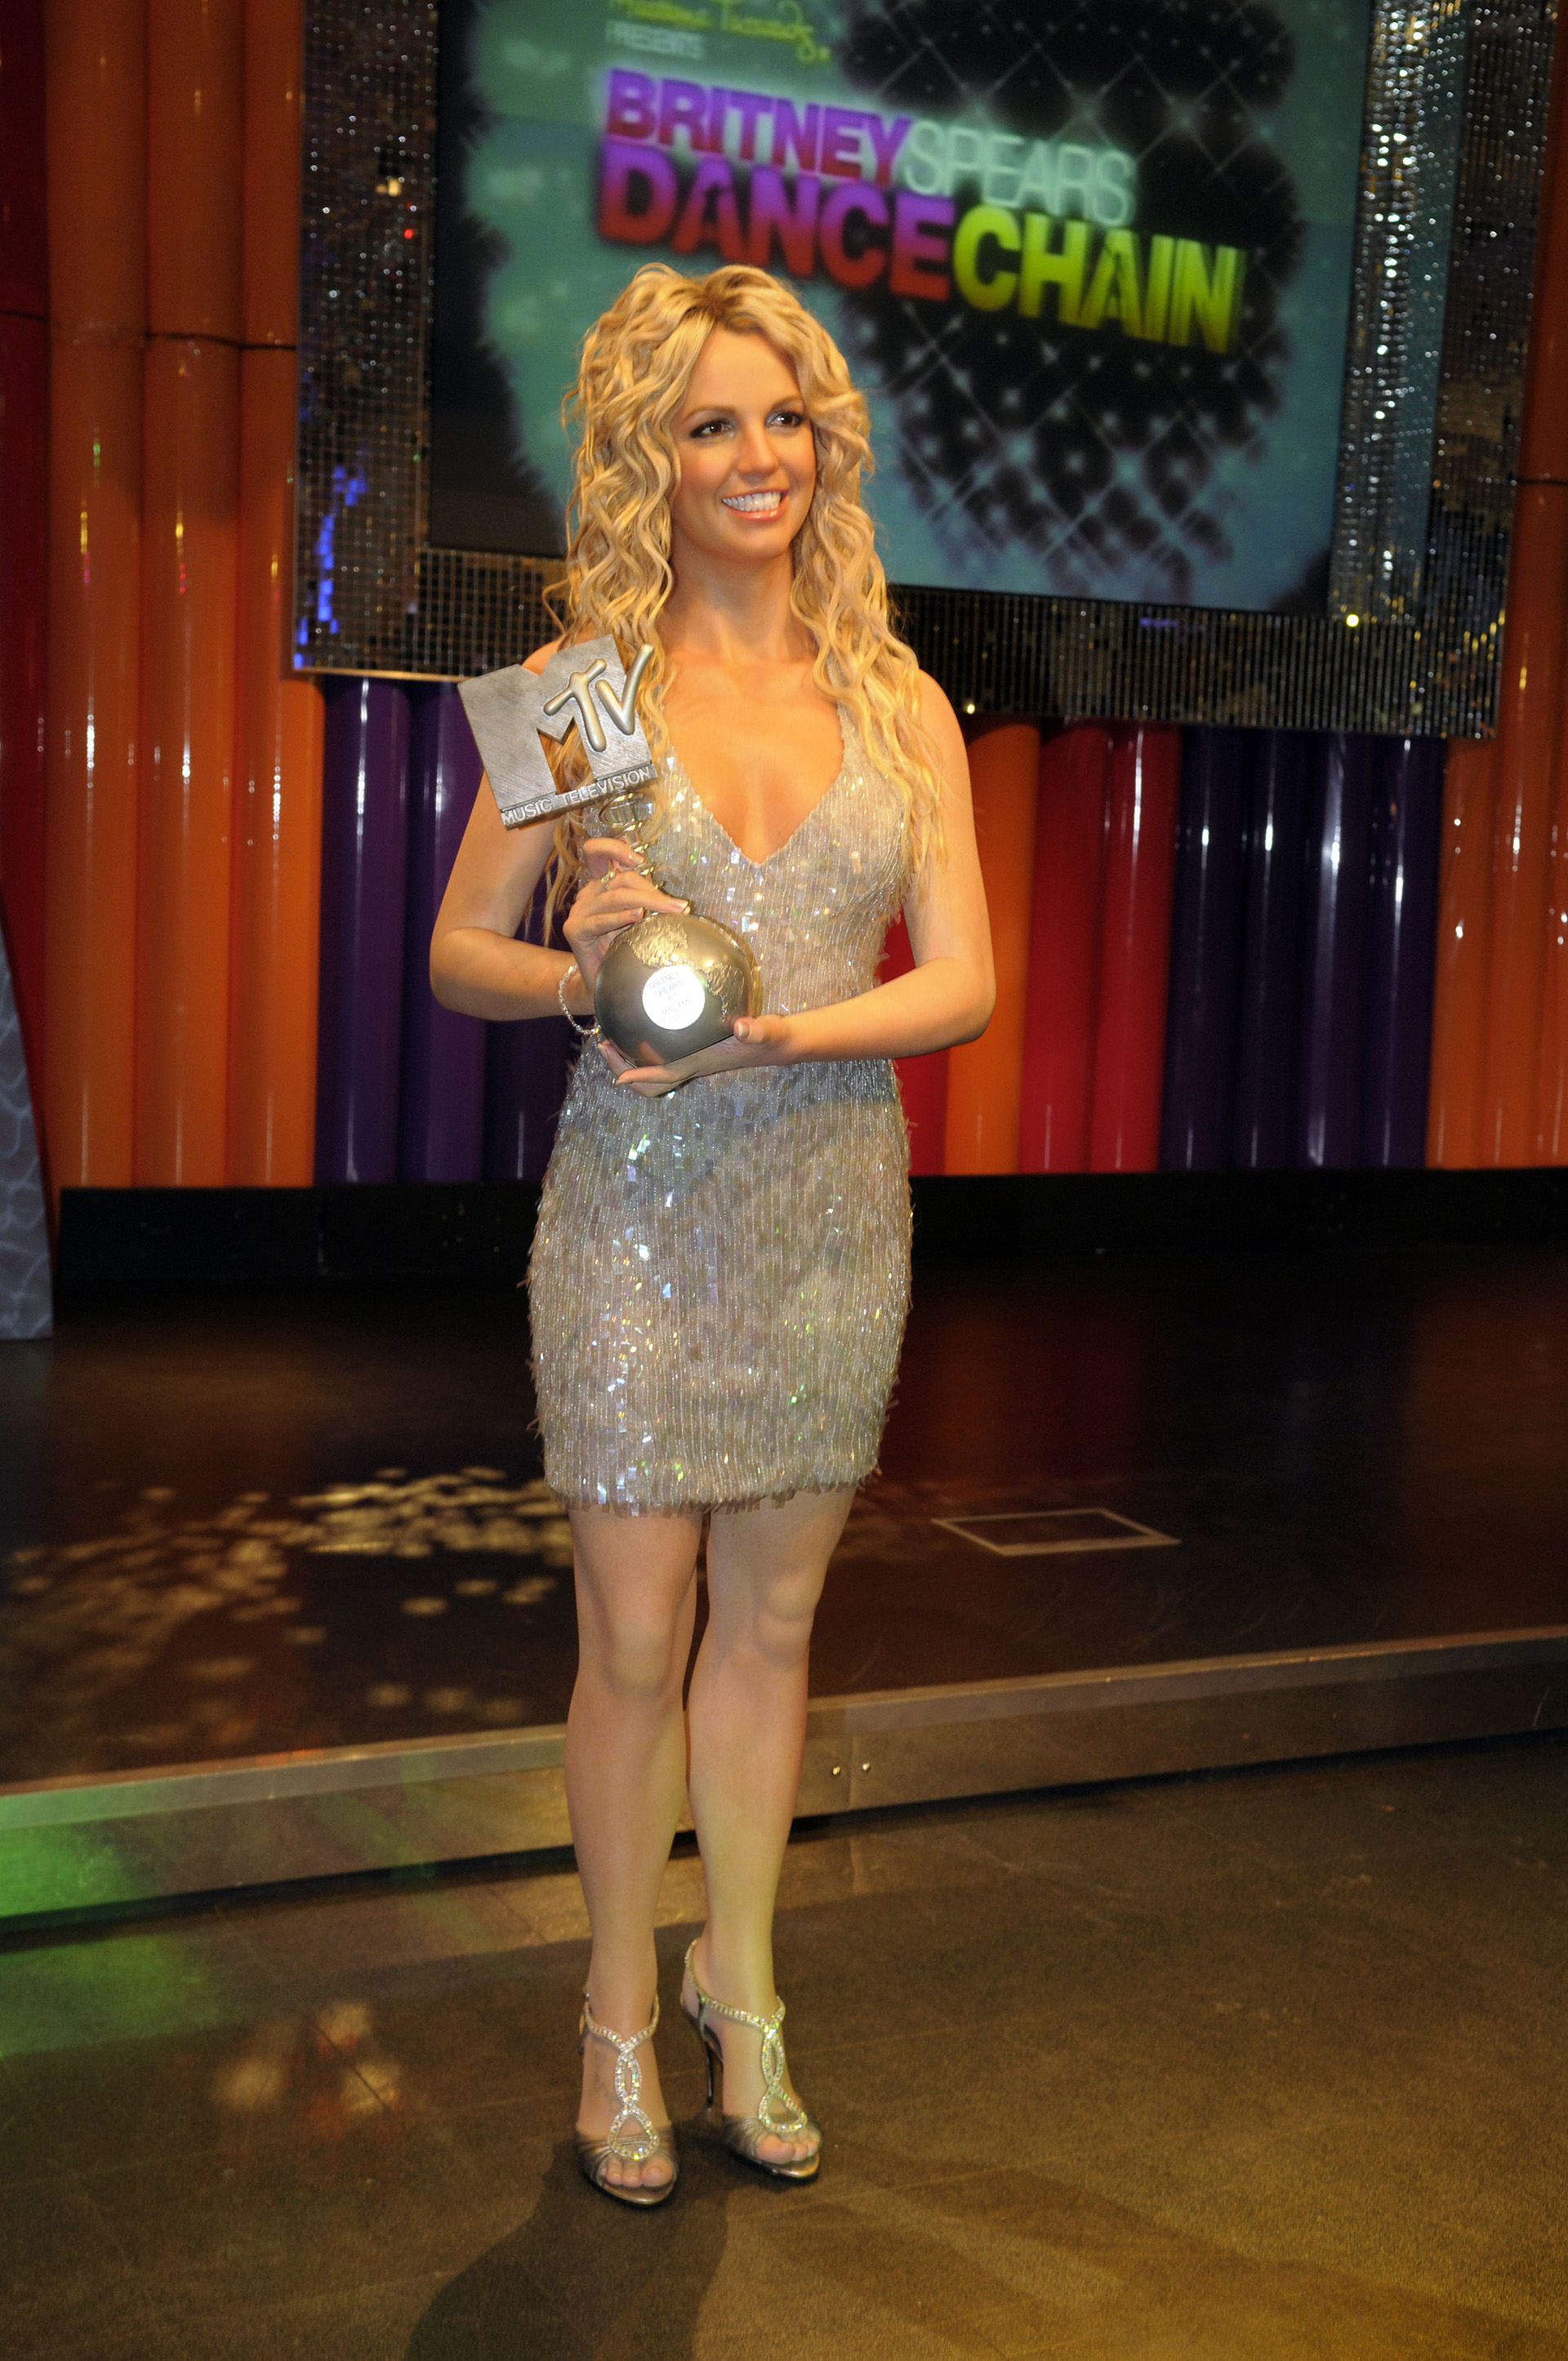 Britney Spears figure holding a MTV award